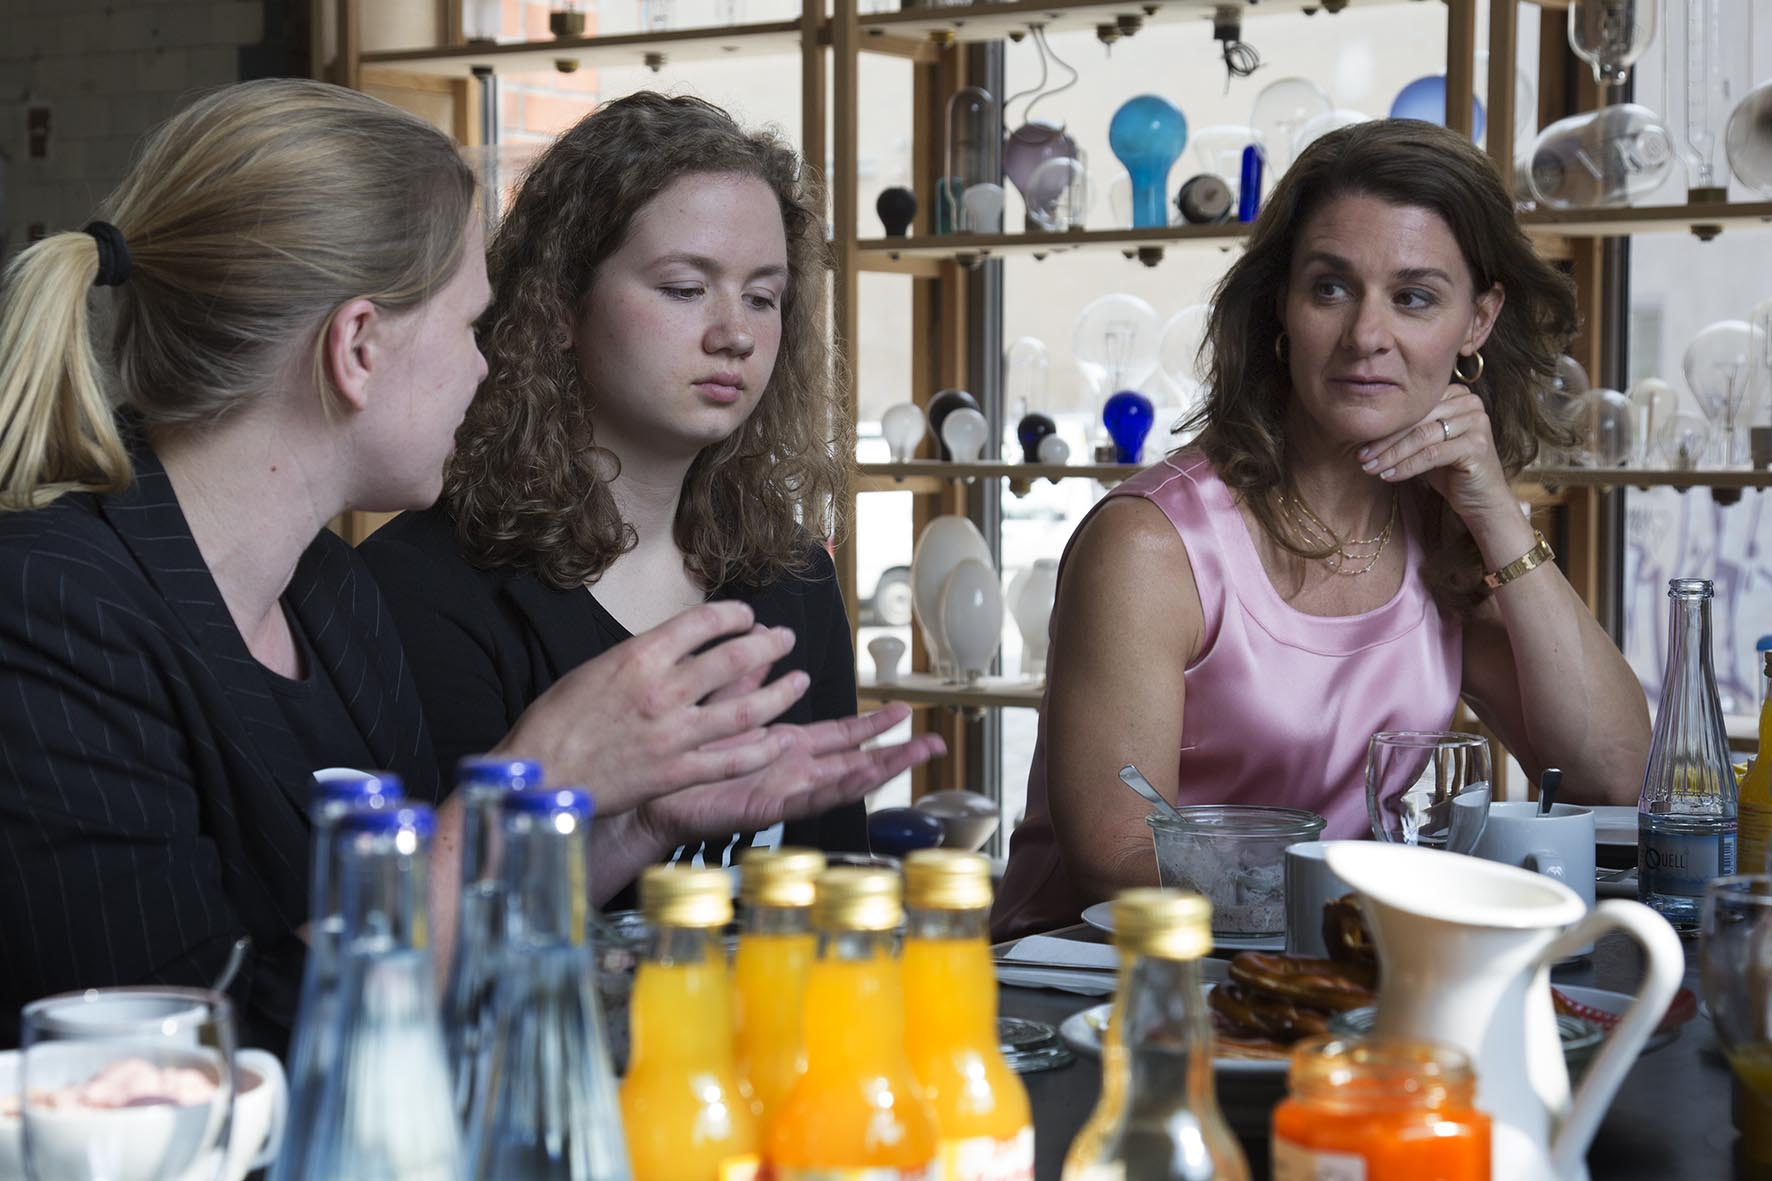 Melinda Gates speaks with ONE Youth Ambassadors at Olafur Eliasson's studio in Berlin.  For the Bill & Melinda Gates Foundation.